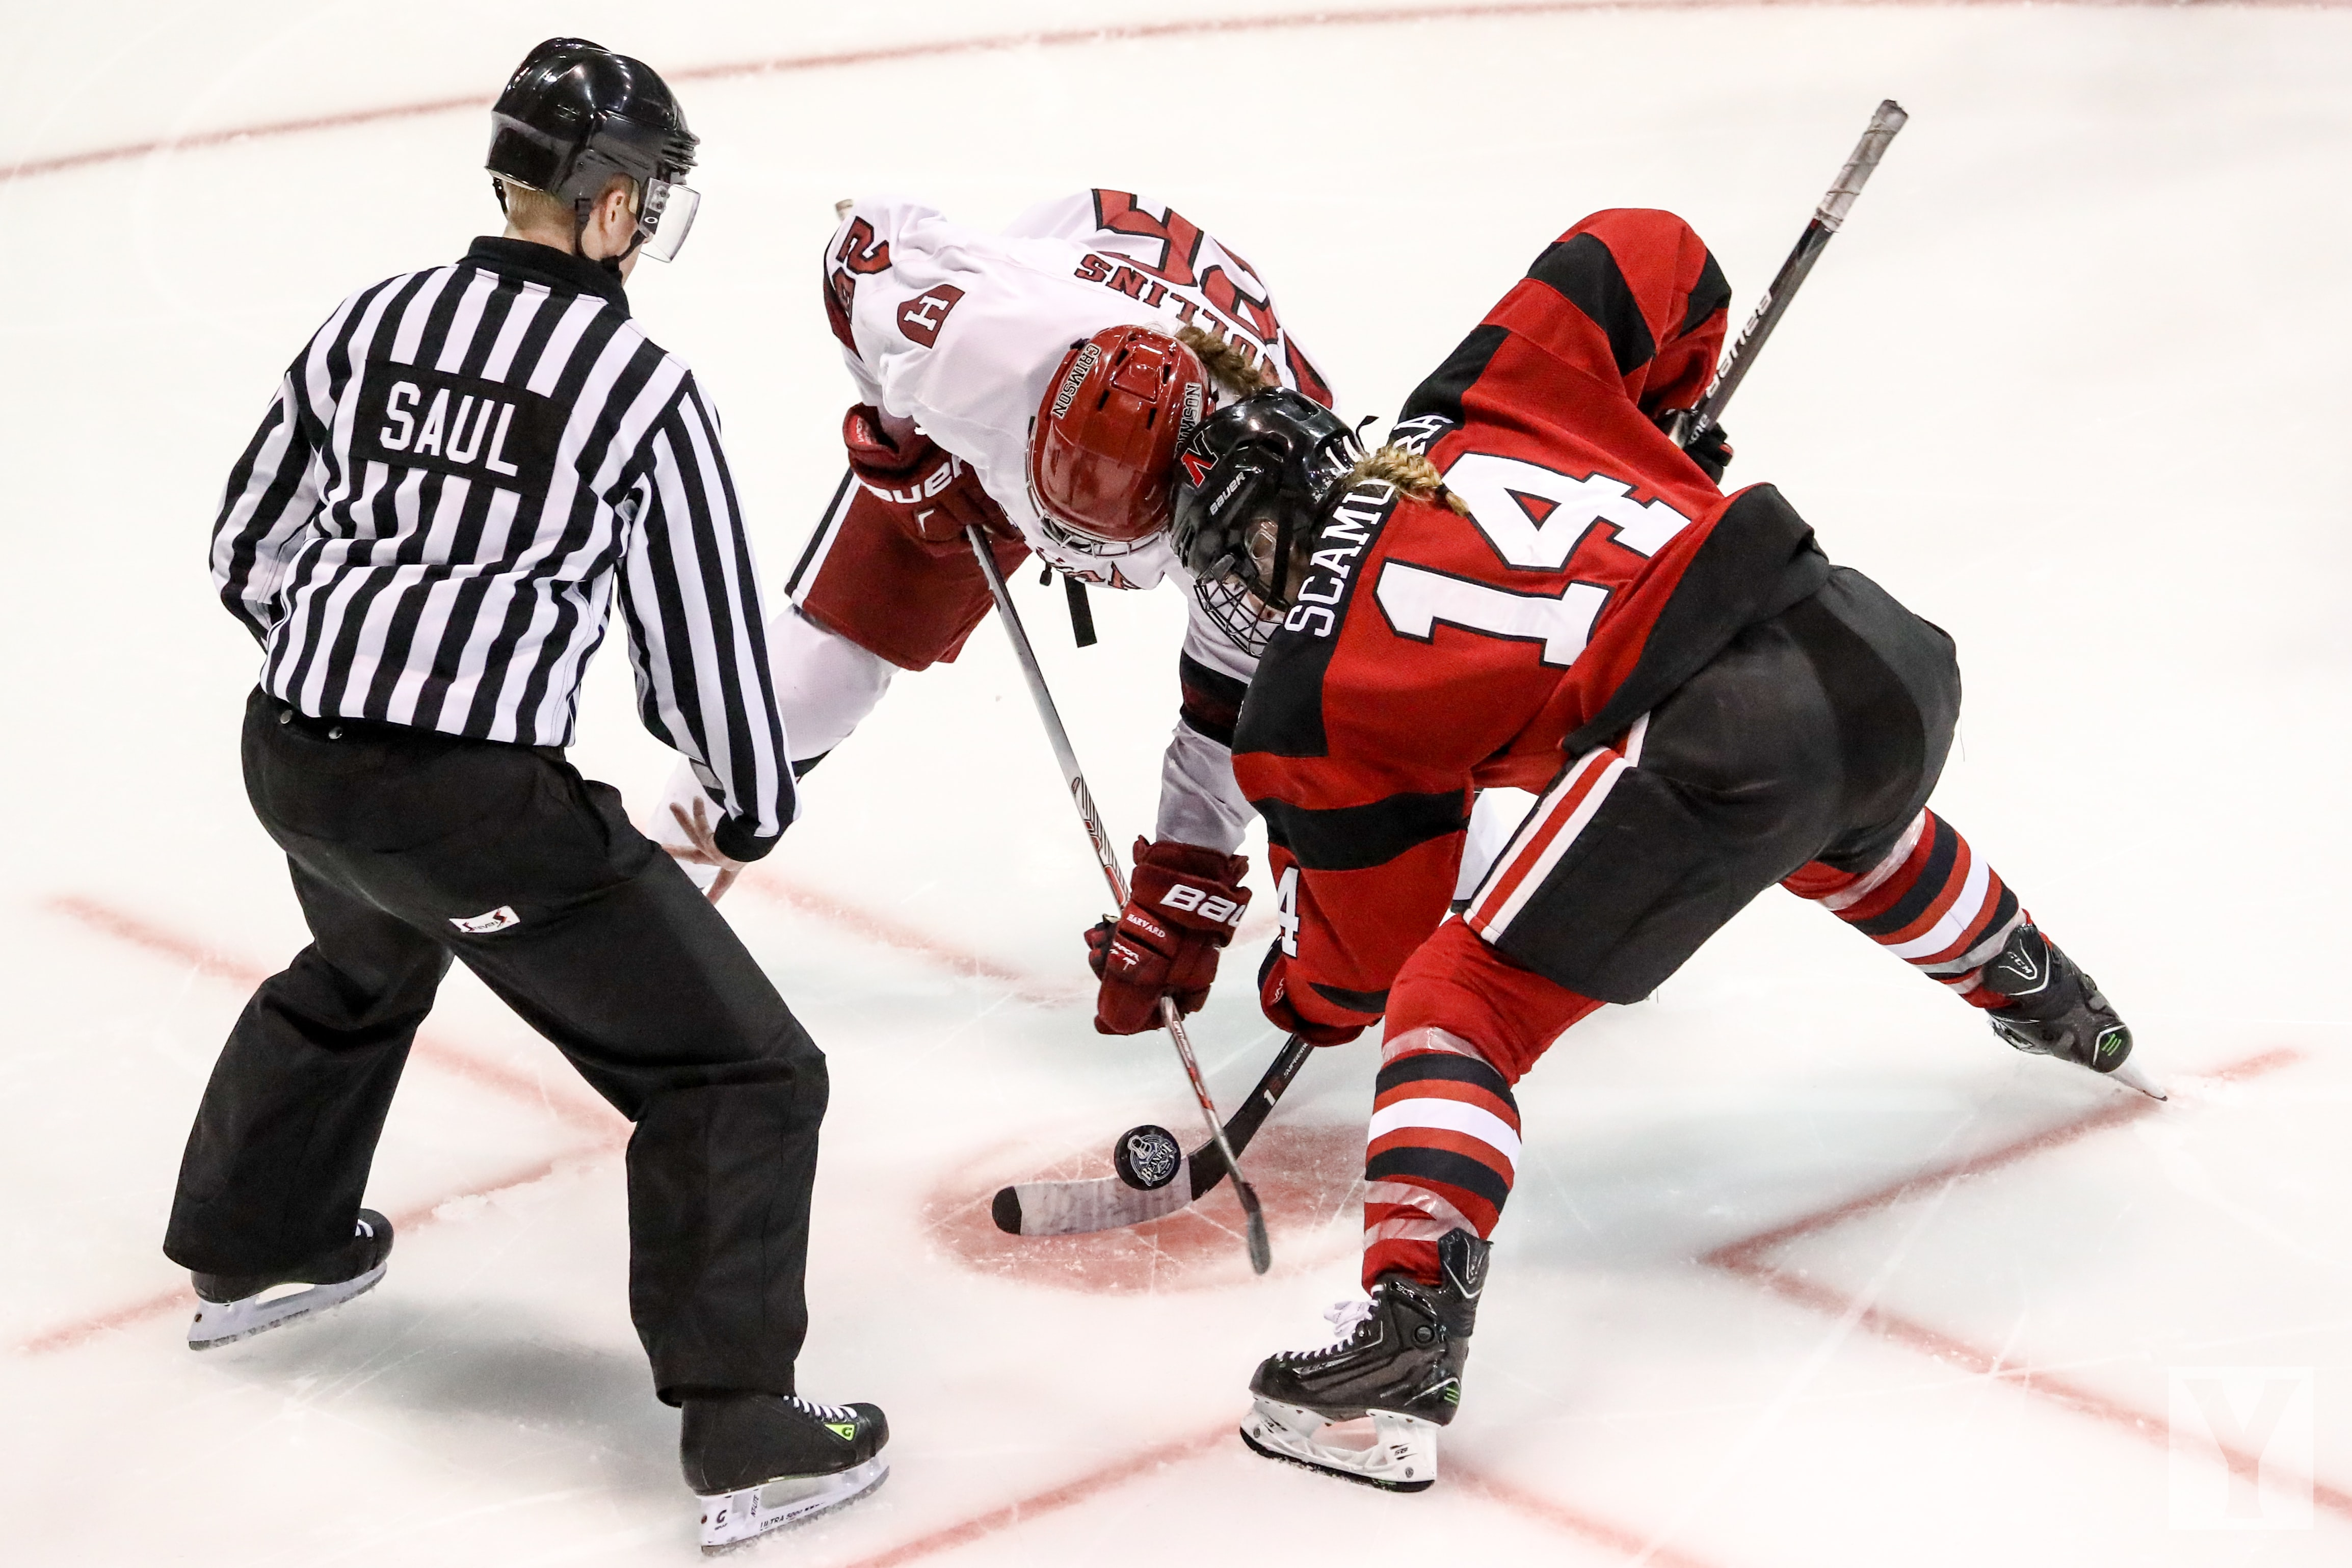 A faceoff at the Matthews Arena between two players